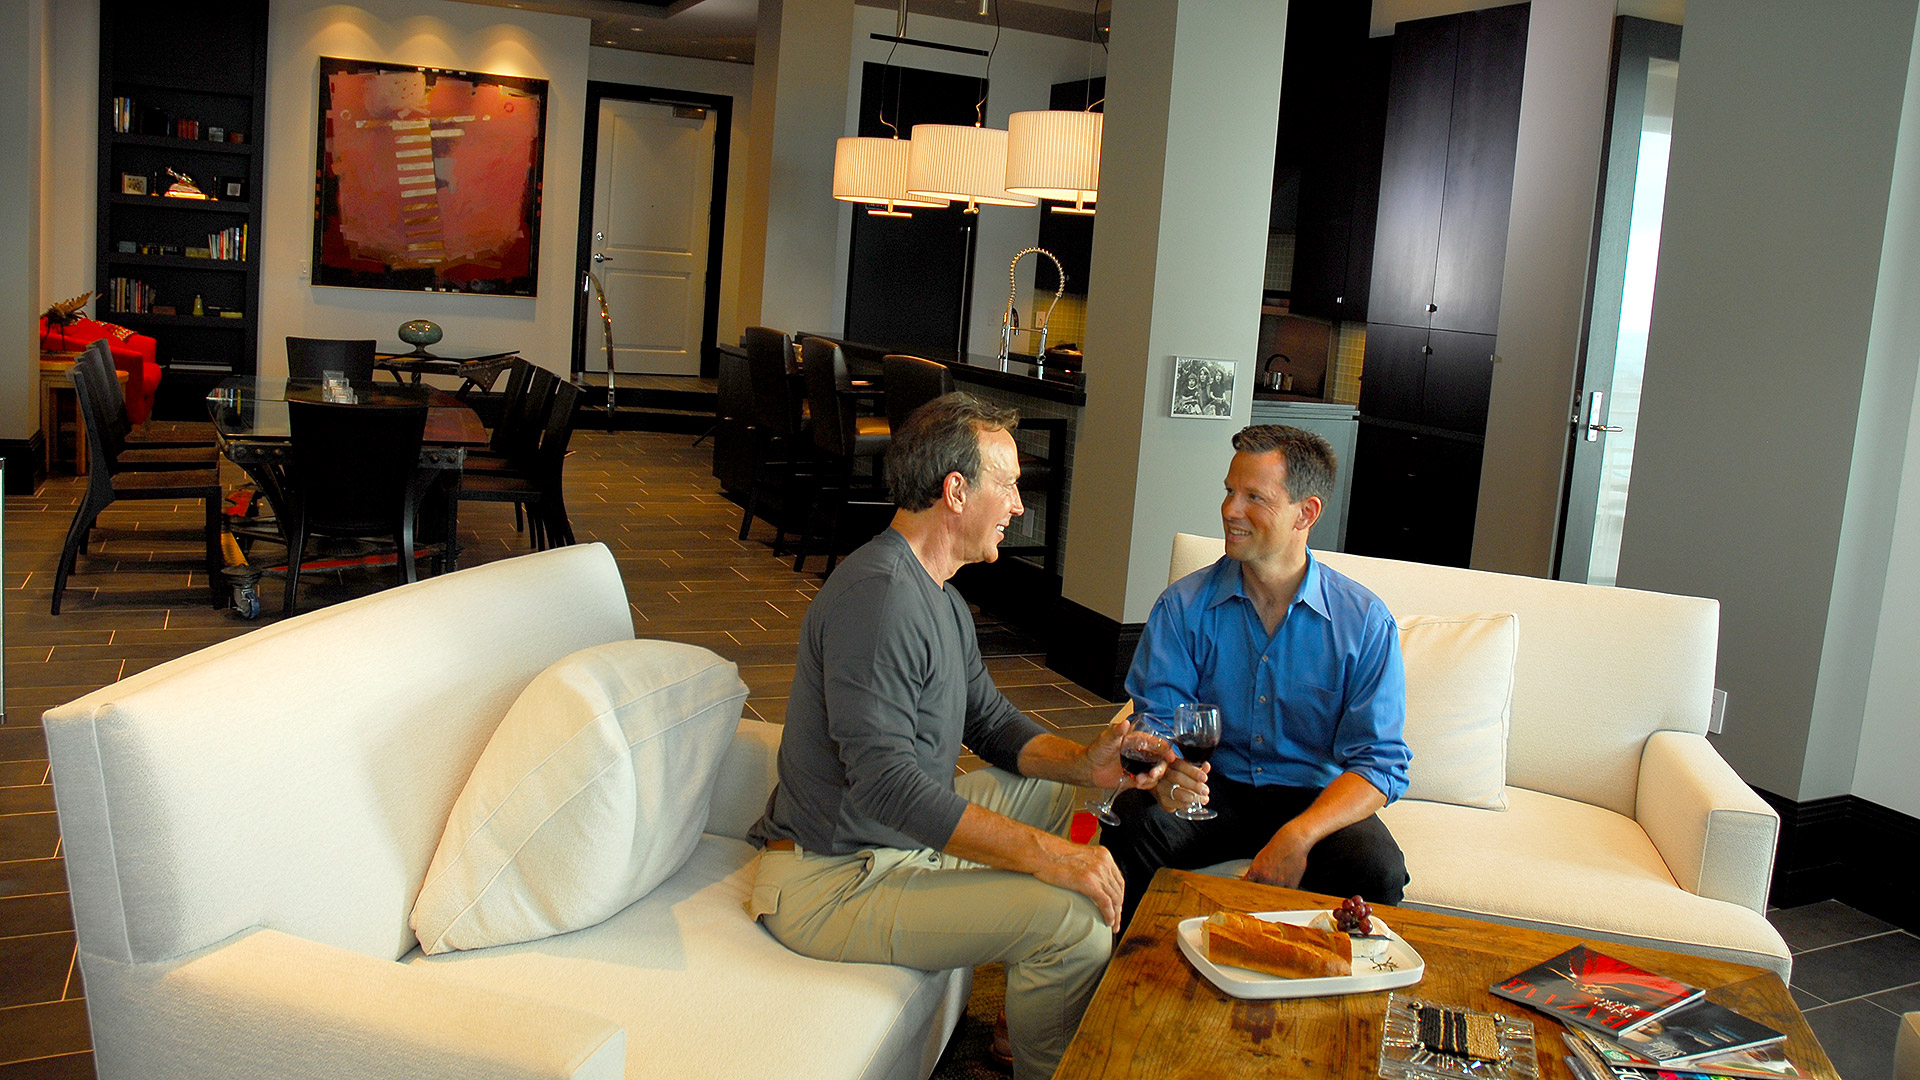 picture of two gentlemen sitting in living room with kitchen and dining area in background